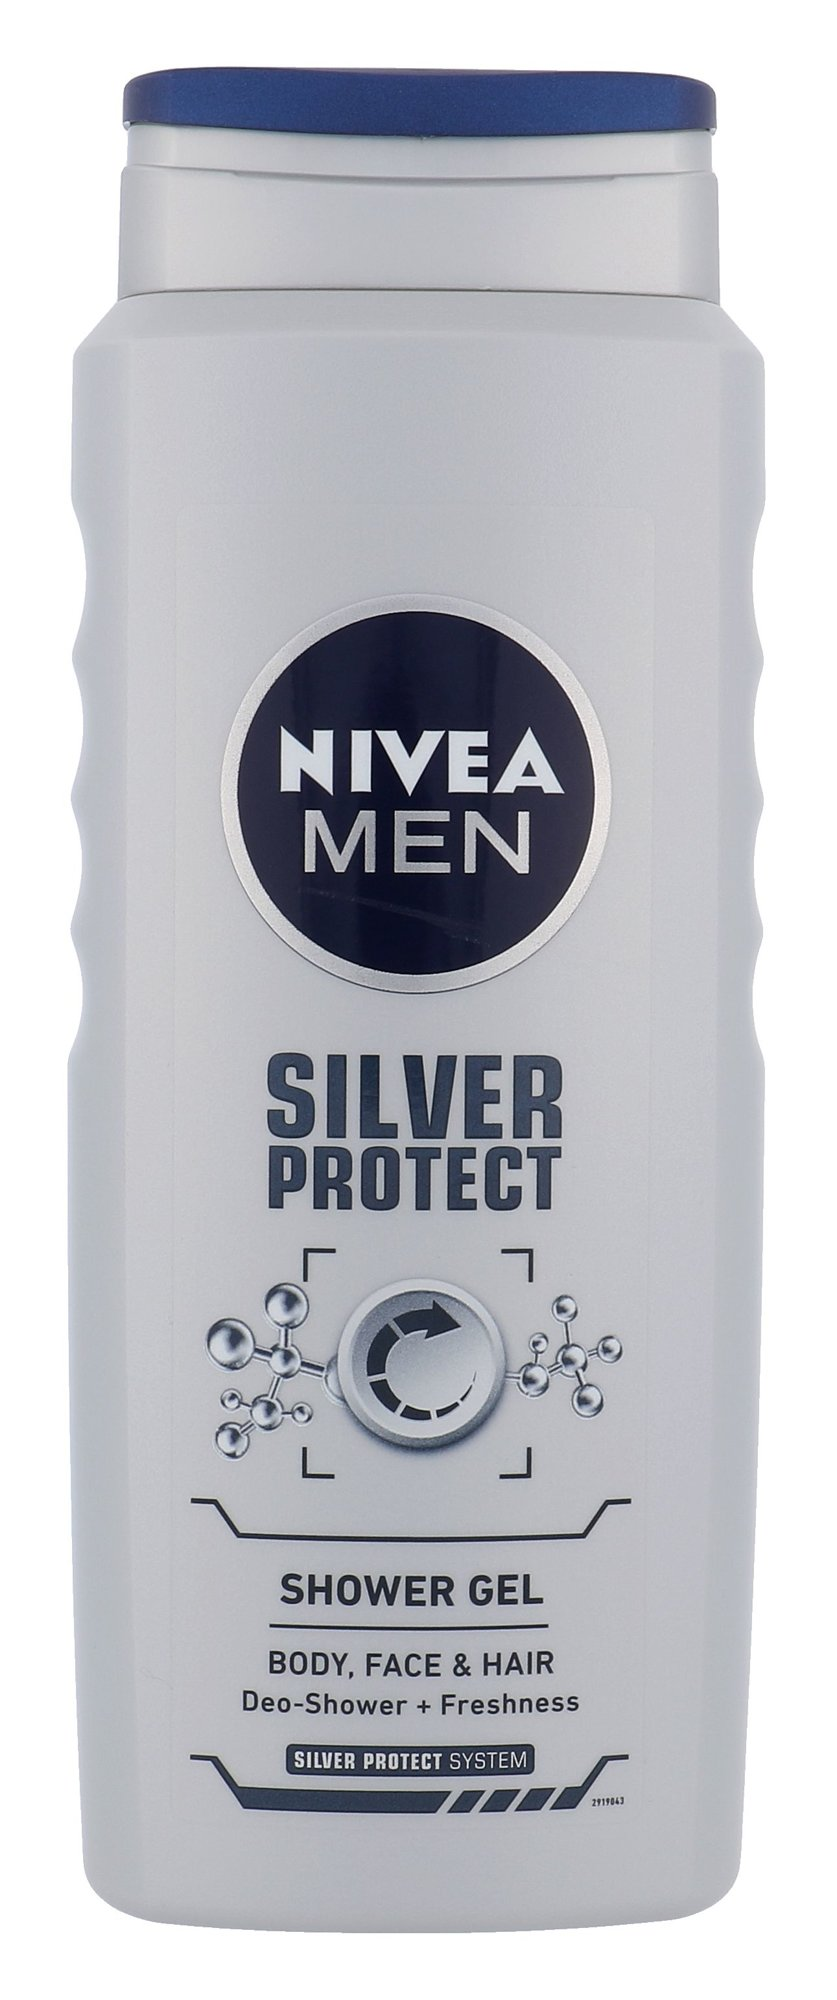 Nivea Men Silver Protect Cosmetic 500ml